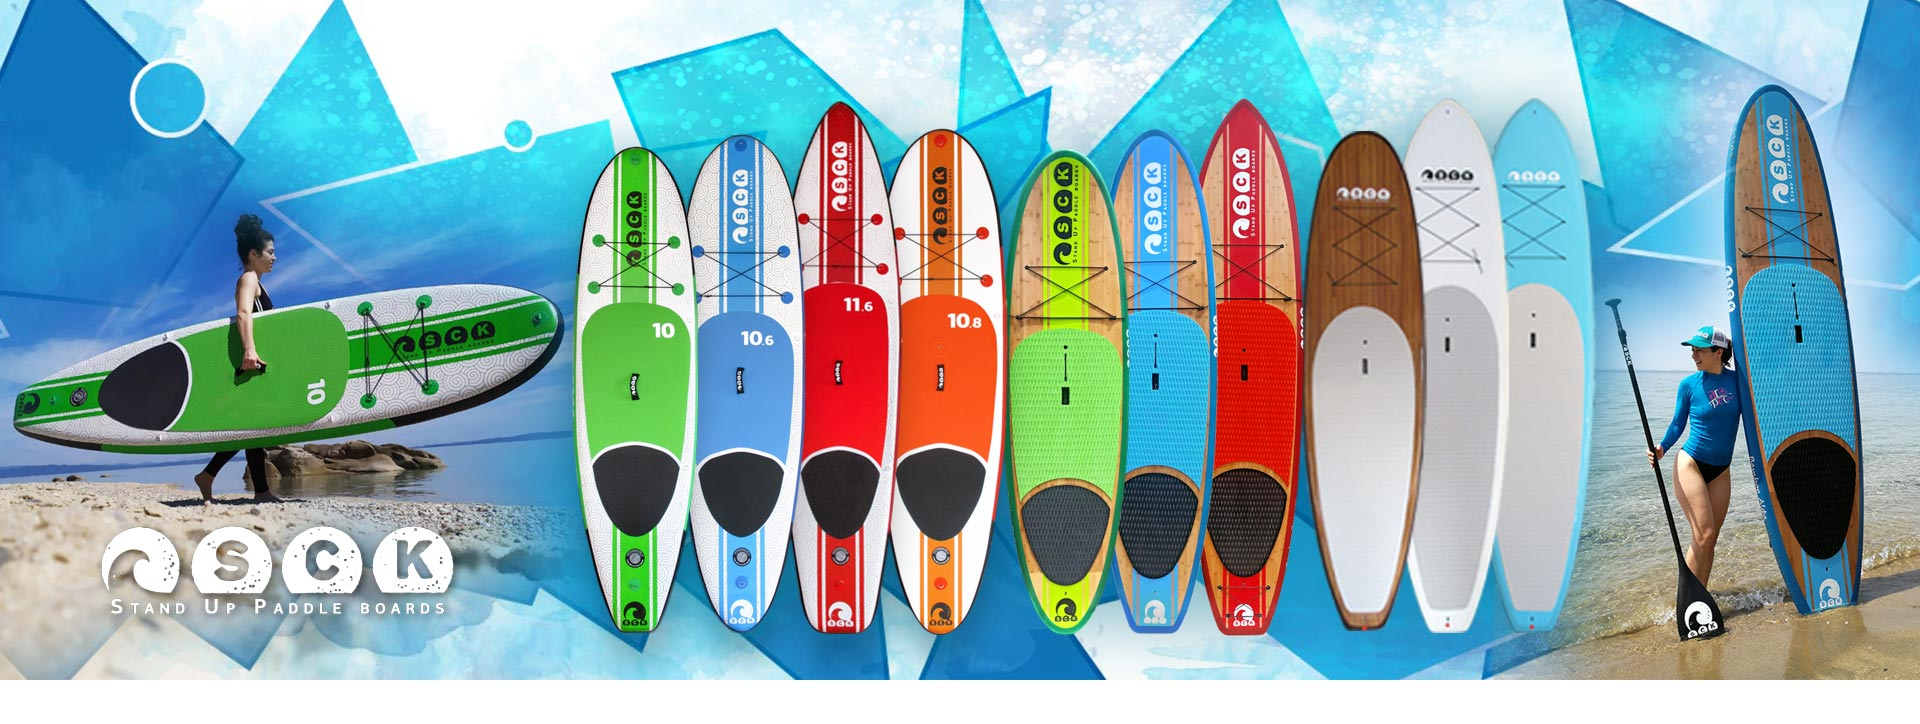 SCK_SUP_boards